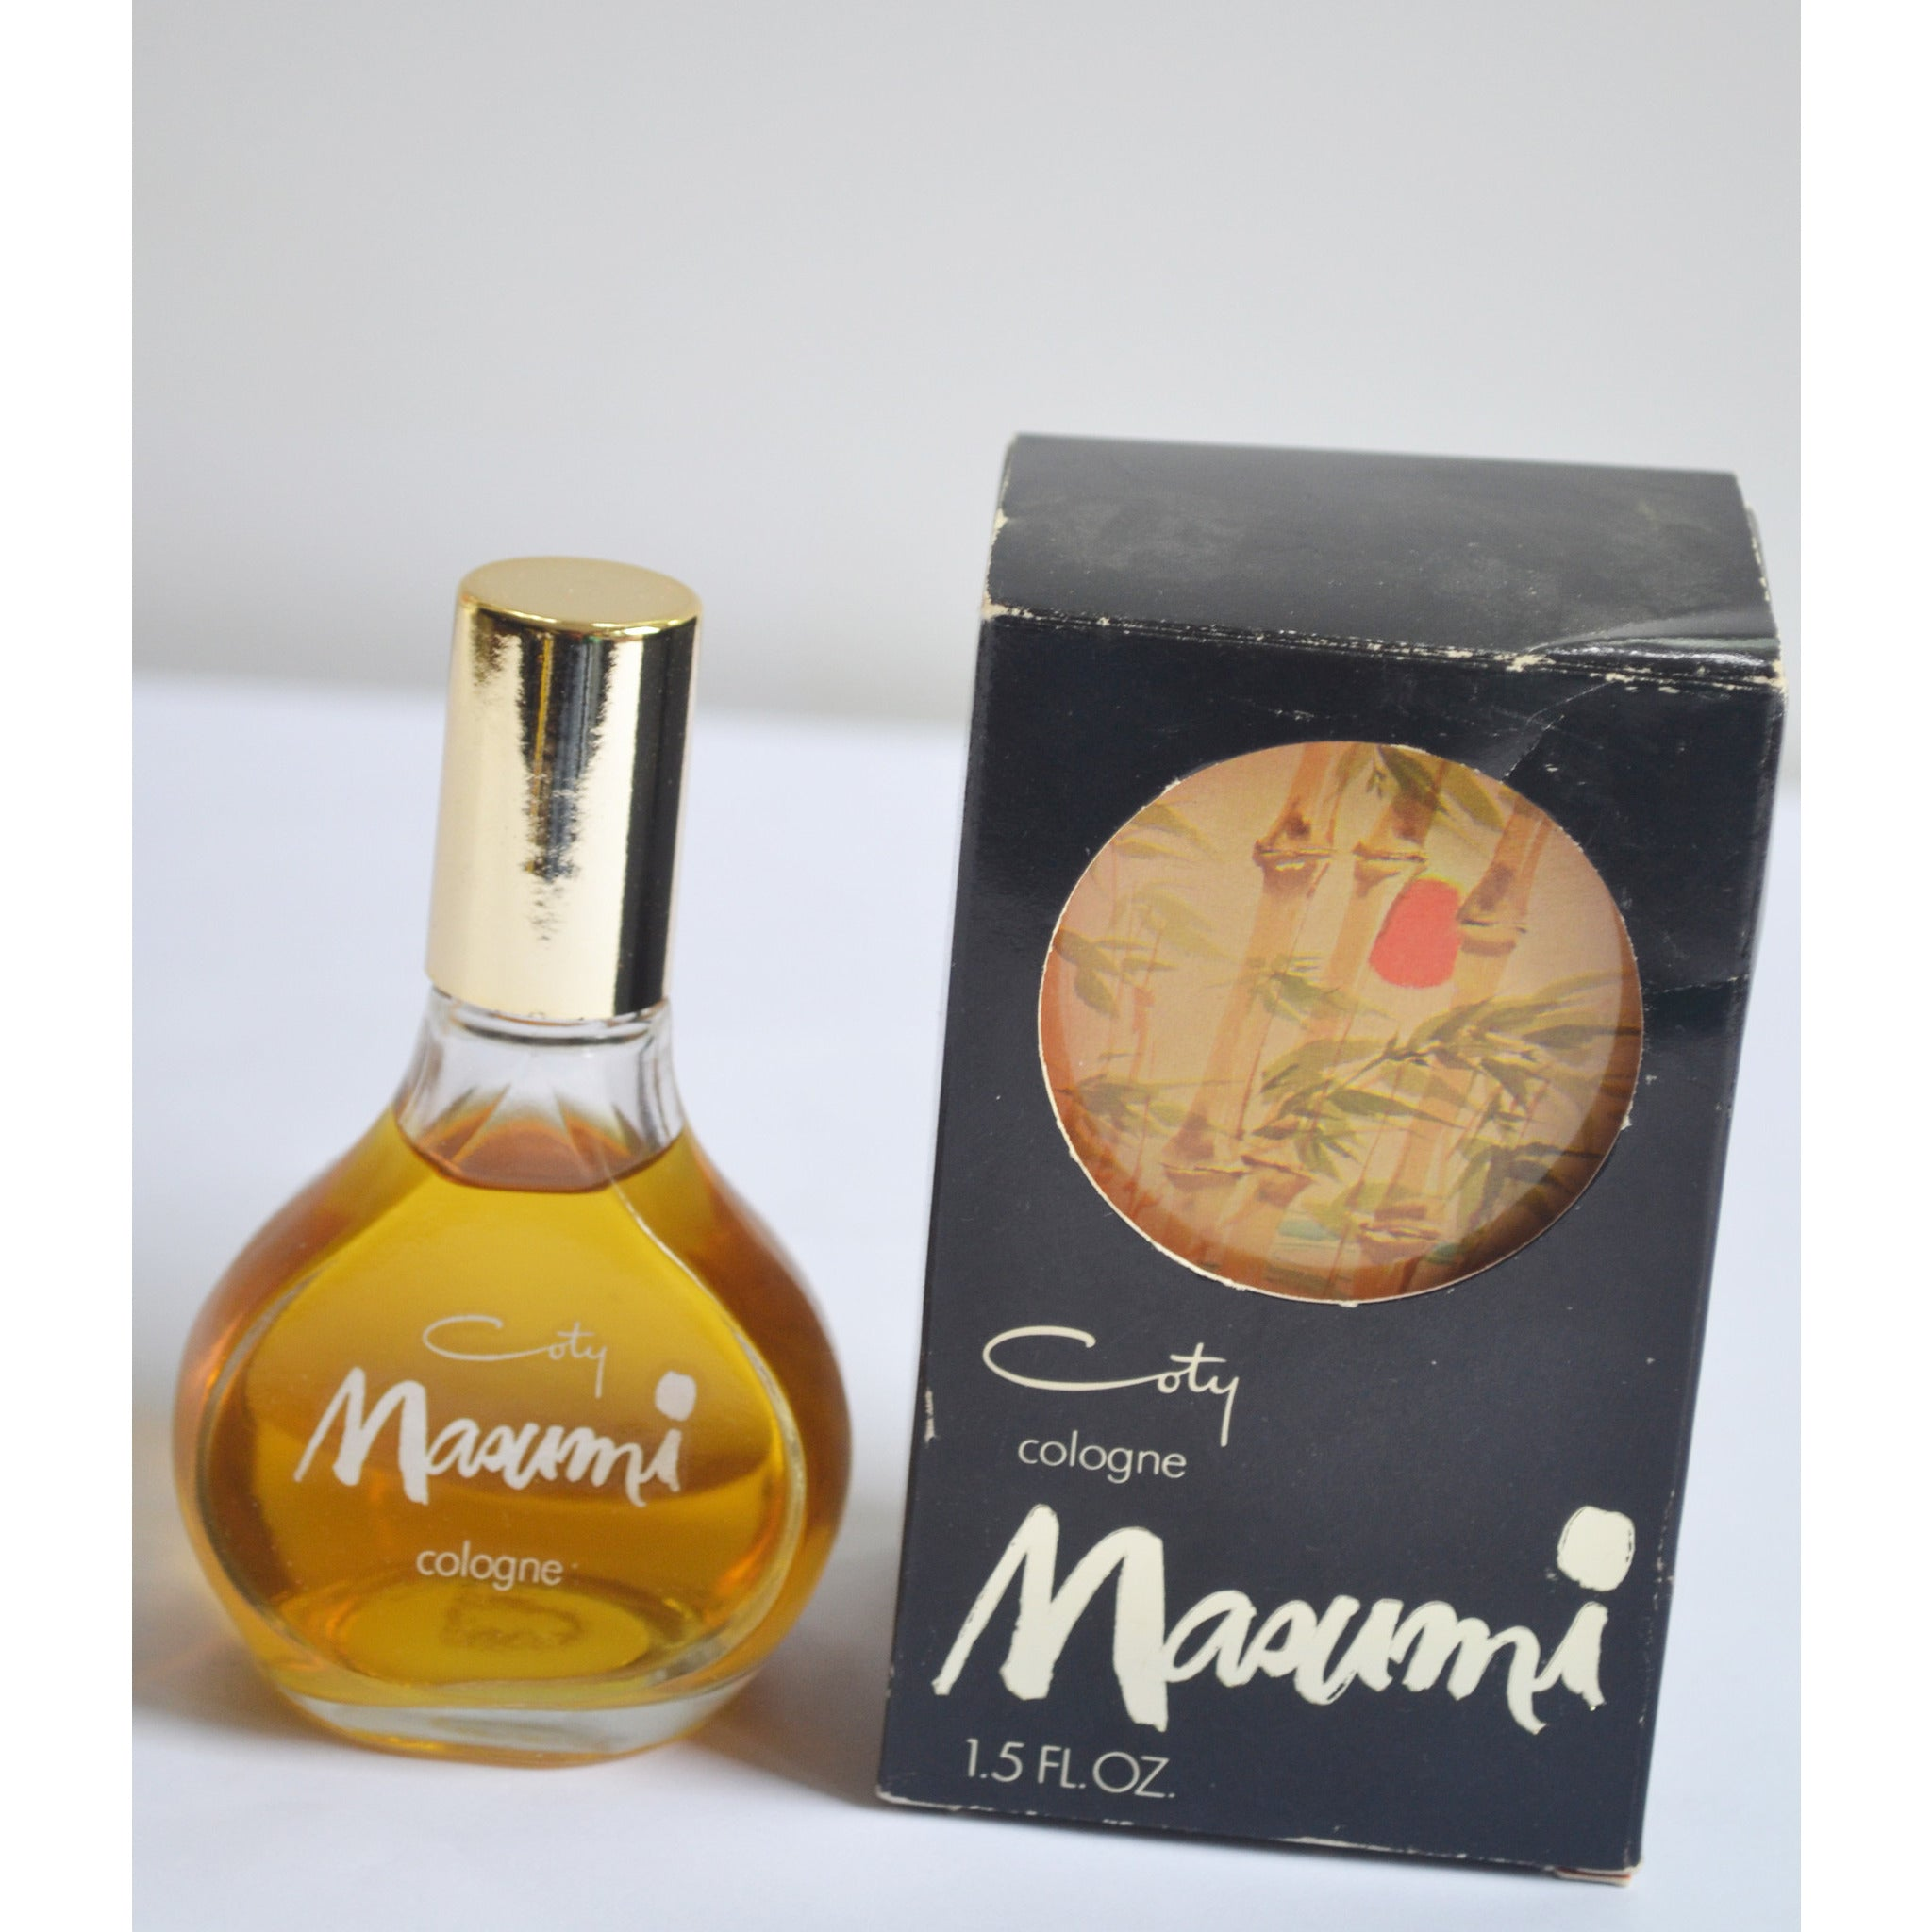 Vintage Masumi Cologne By Coty